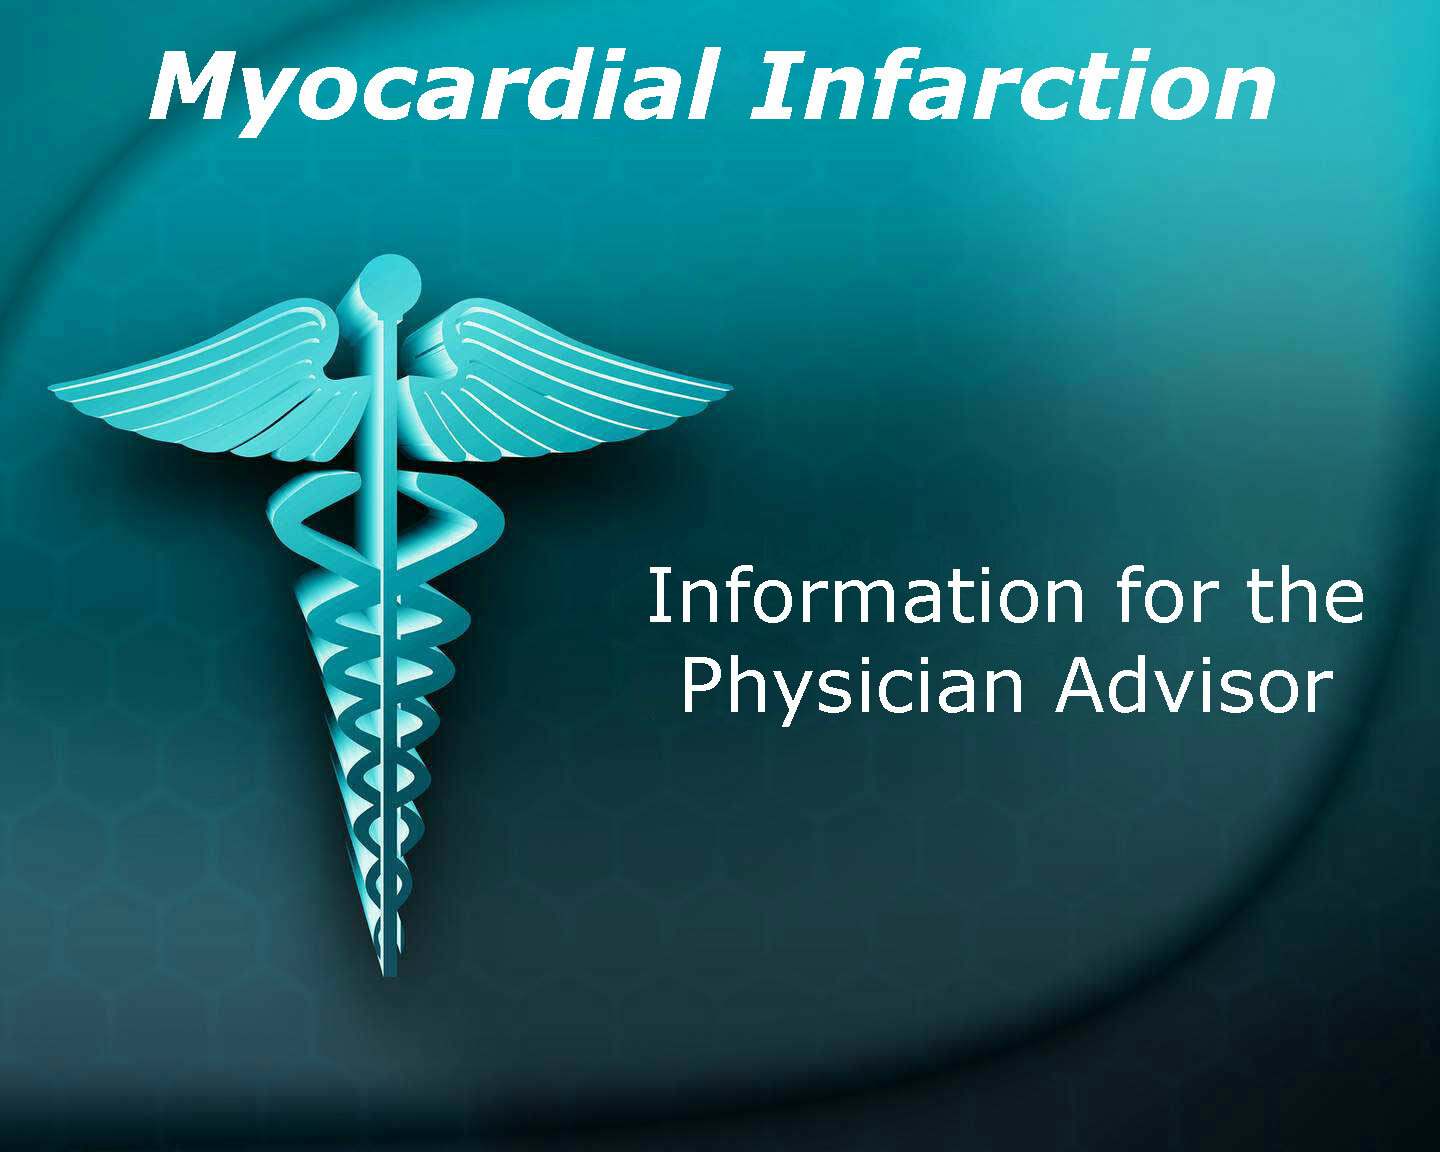 Myocardial Infarction Information for the Physician Advisor